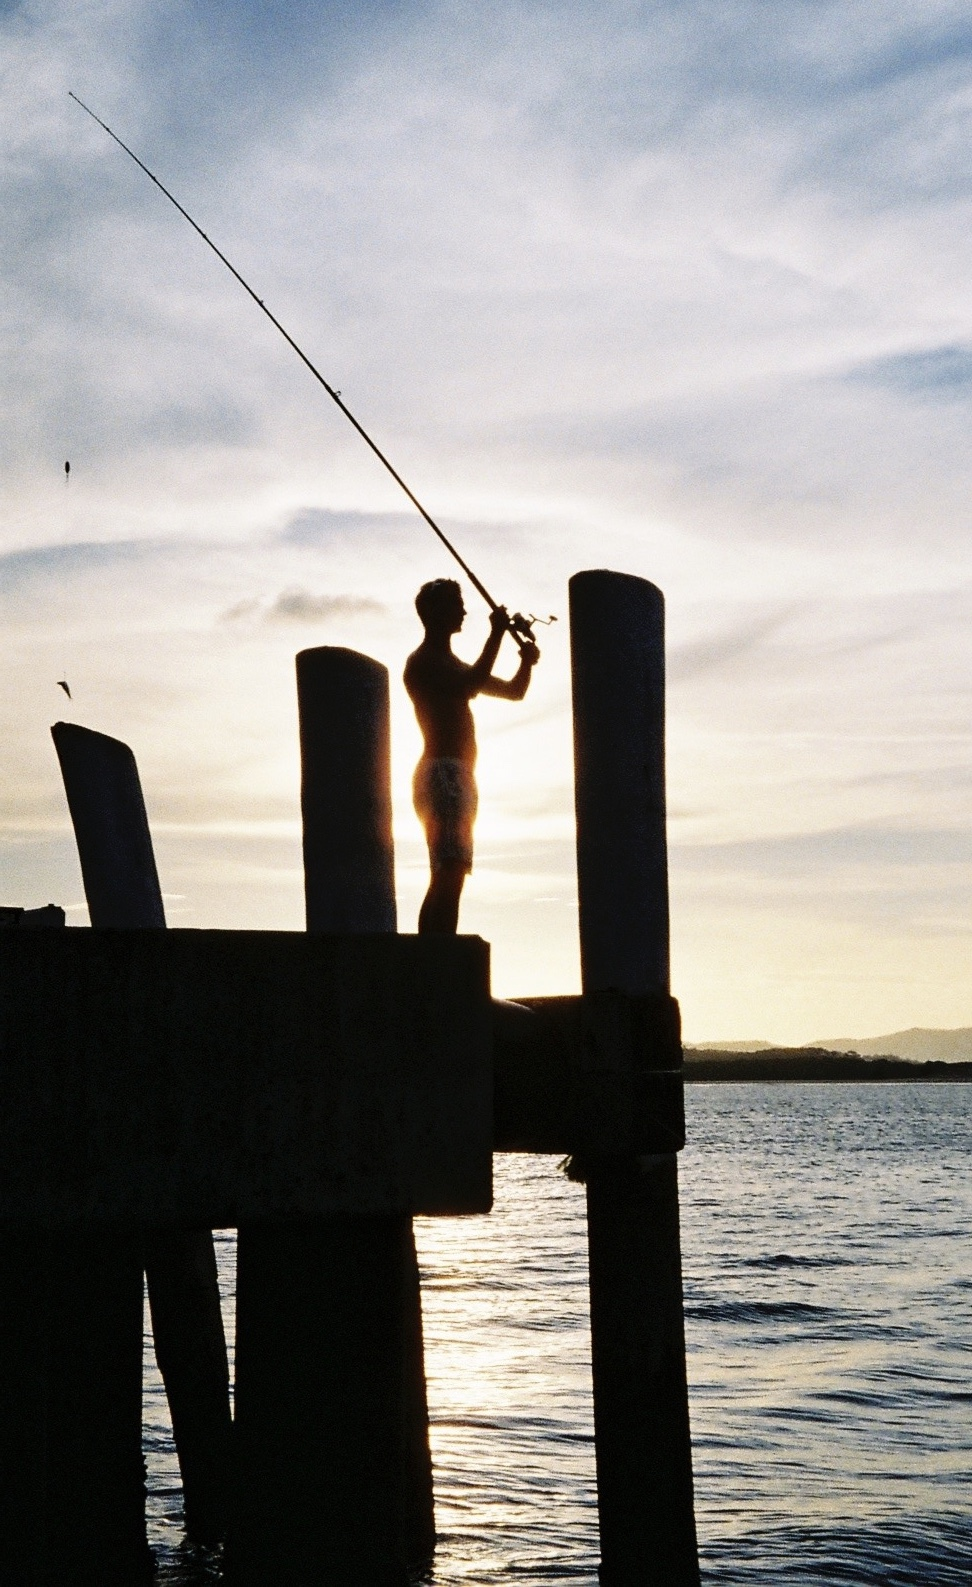 Fishing off Cooktown's jetty, Queensland, Australia